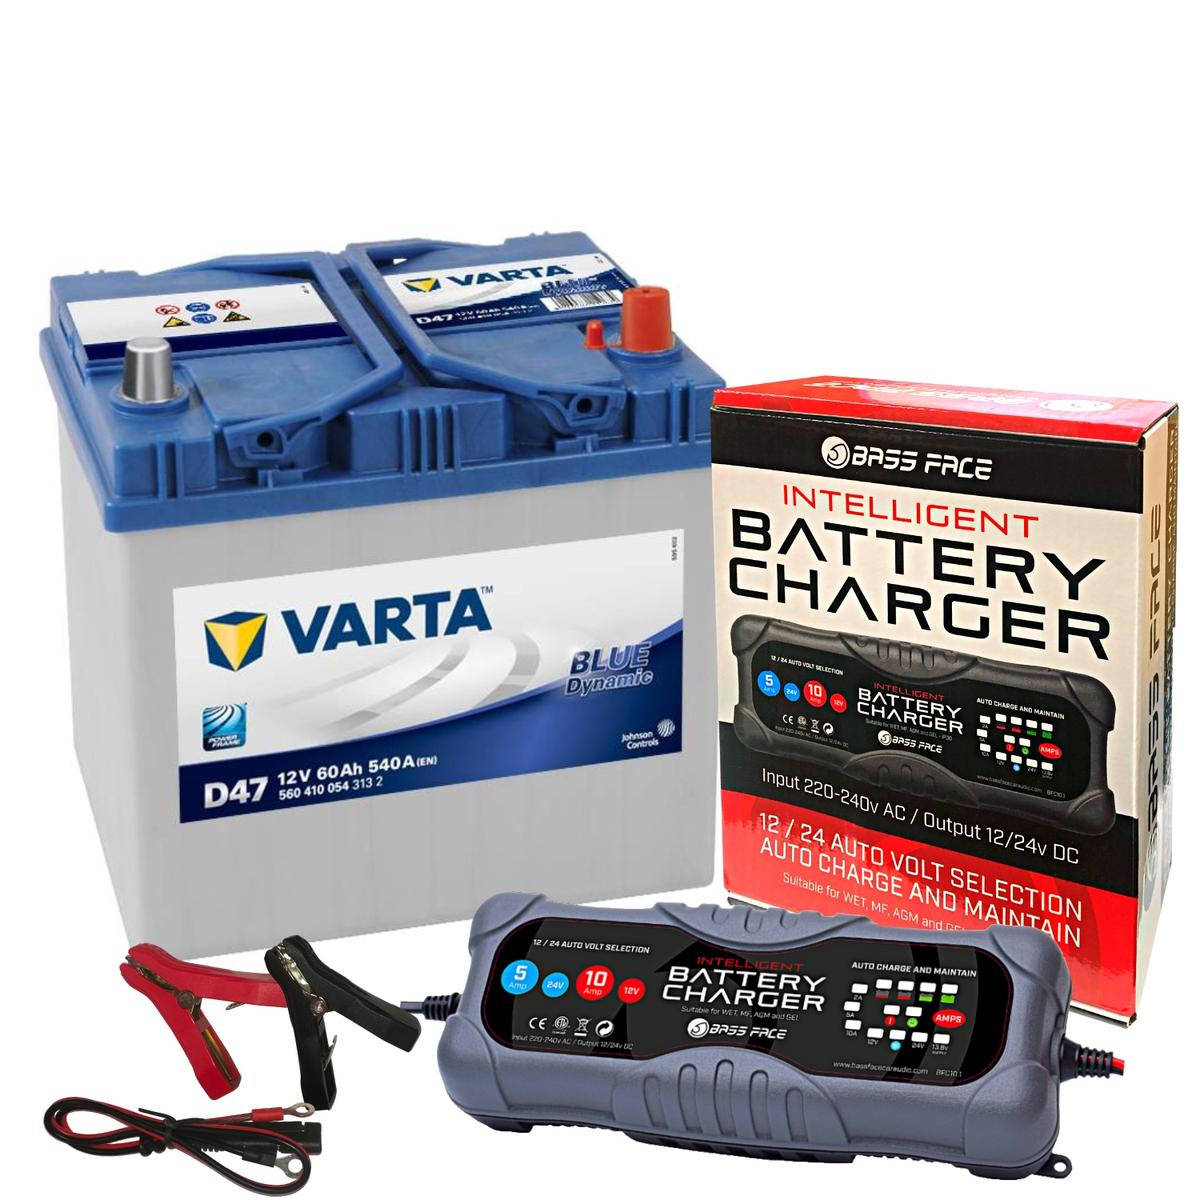 Varta D47 Mazda Toyota Car Battery 12v 4 Year 005L 60Ah 540CCA W/ 10 Amp Charger